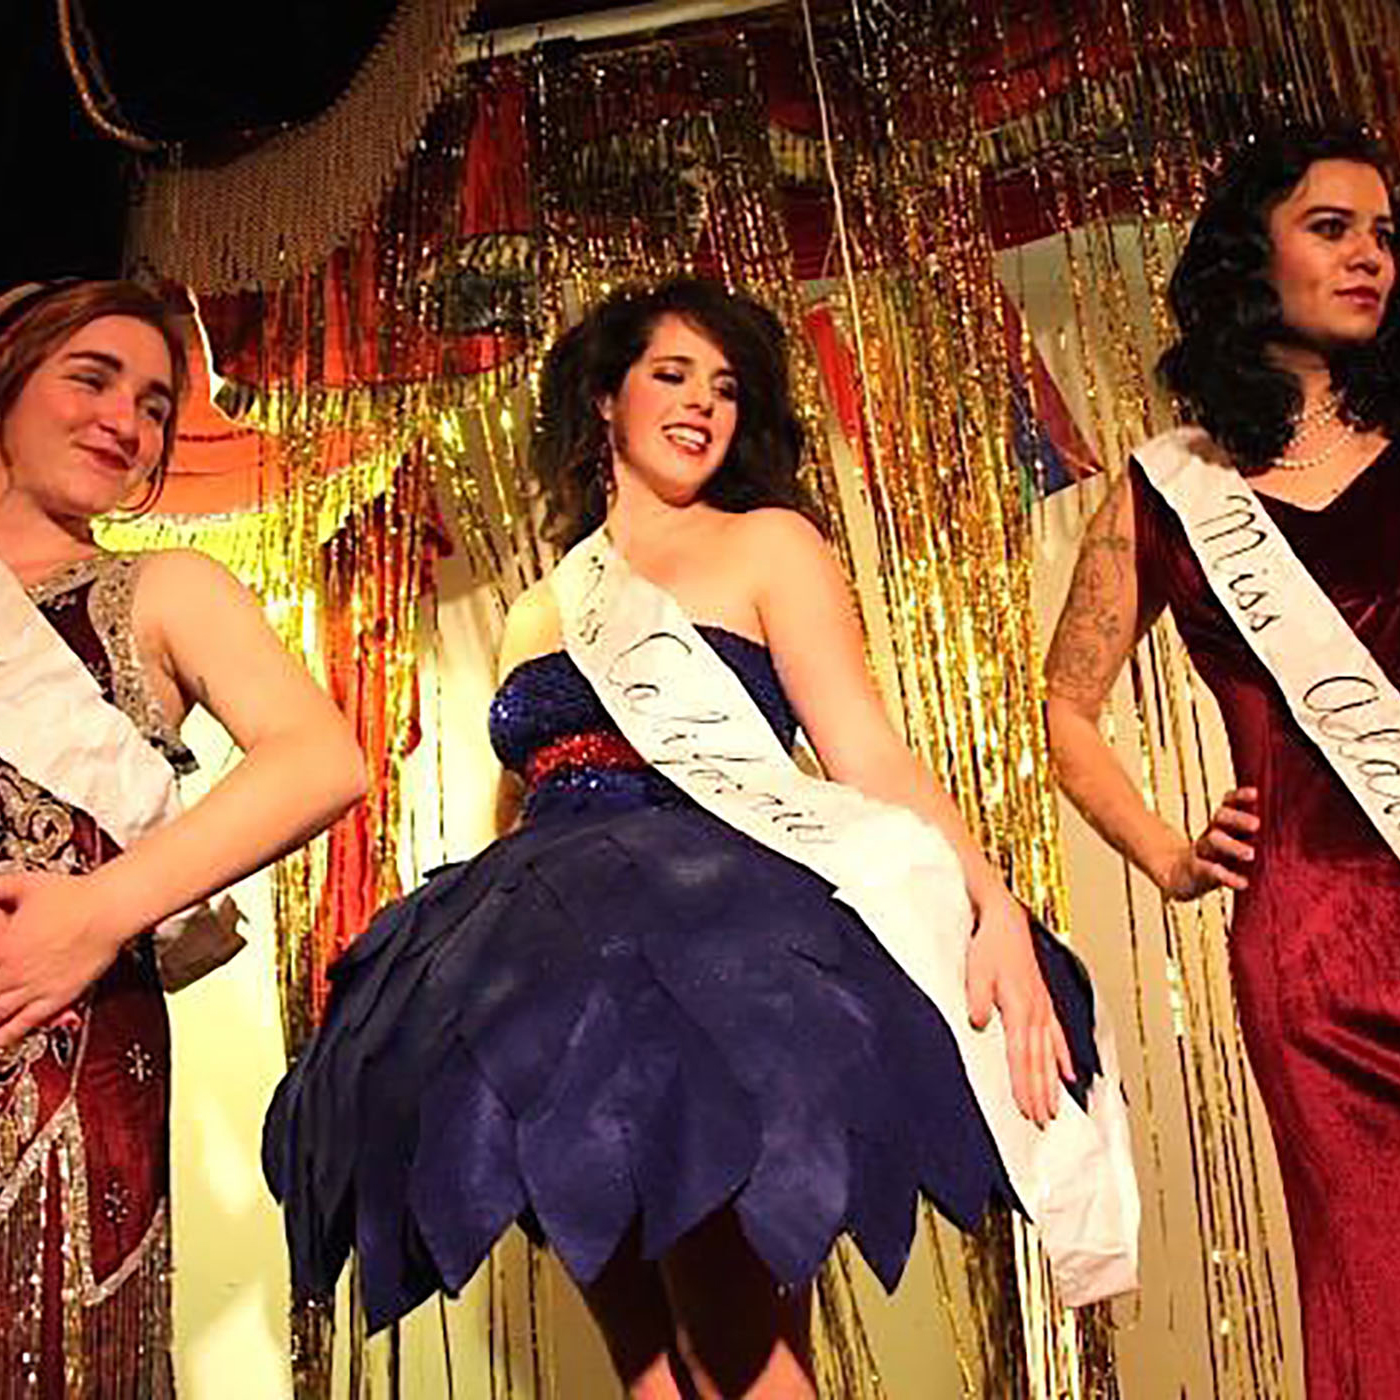 The winner of the 'Miss Appropriation' pageant?White women - May 21, 2018SF Gate